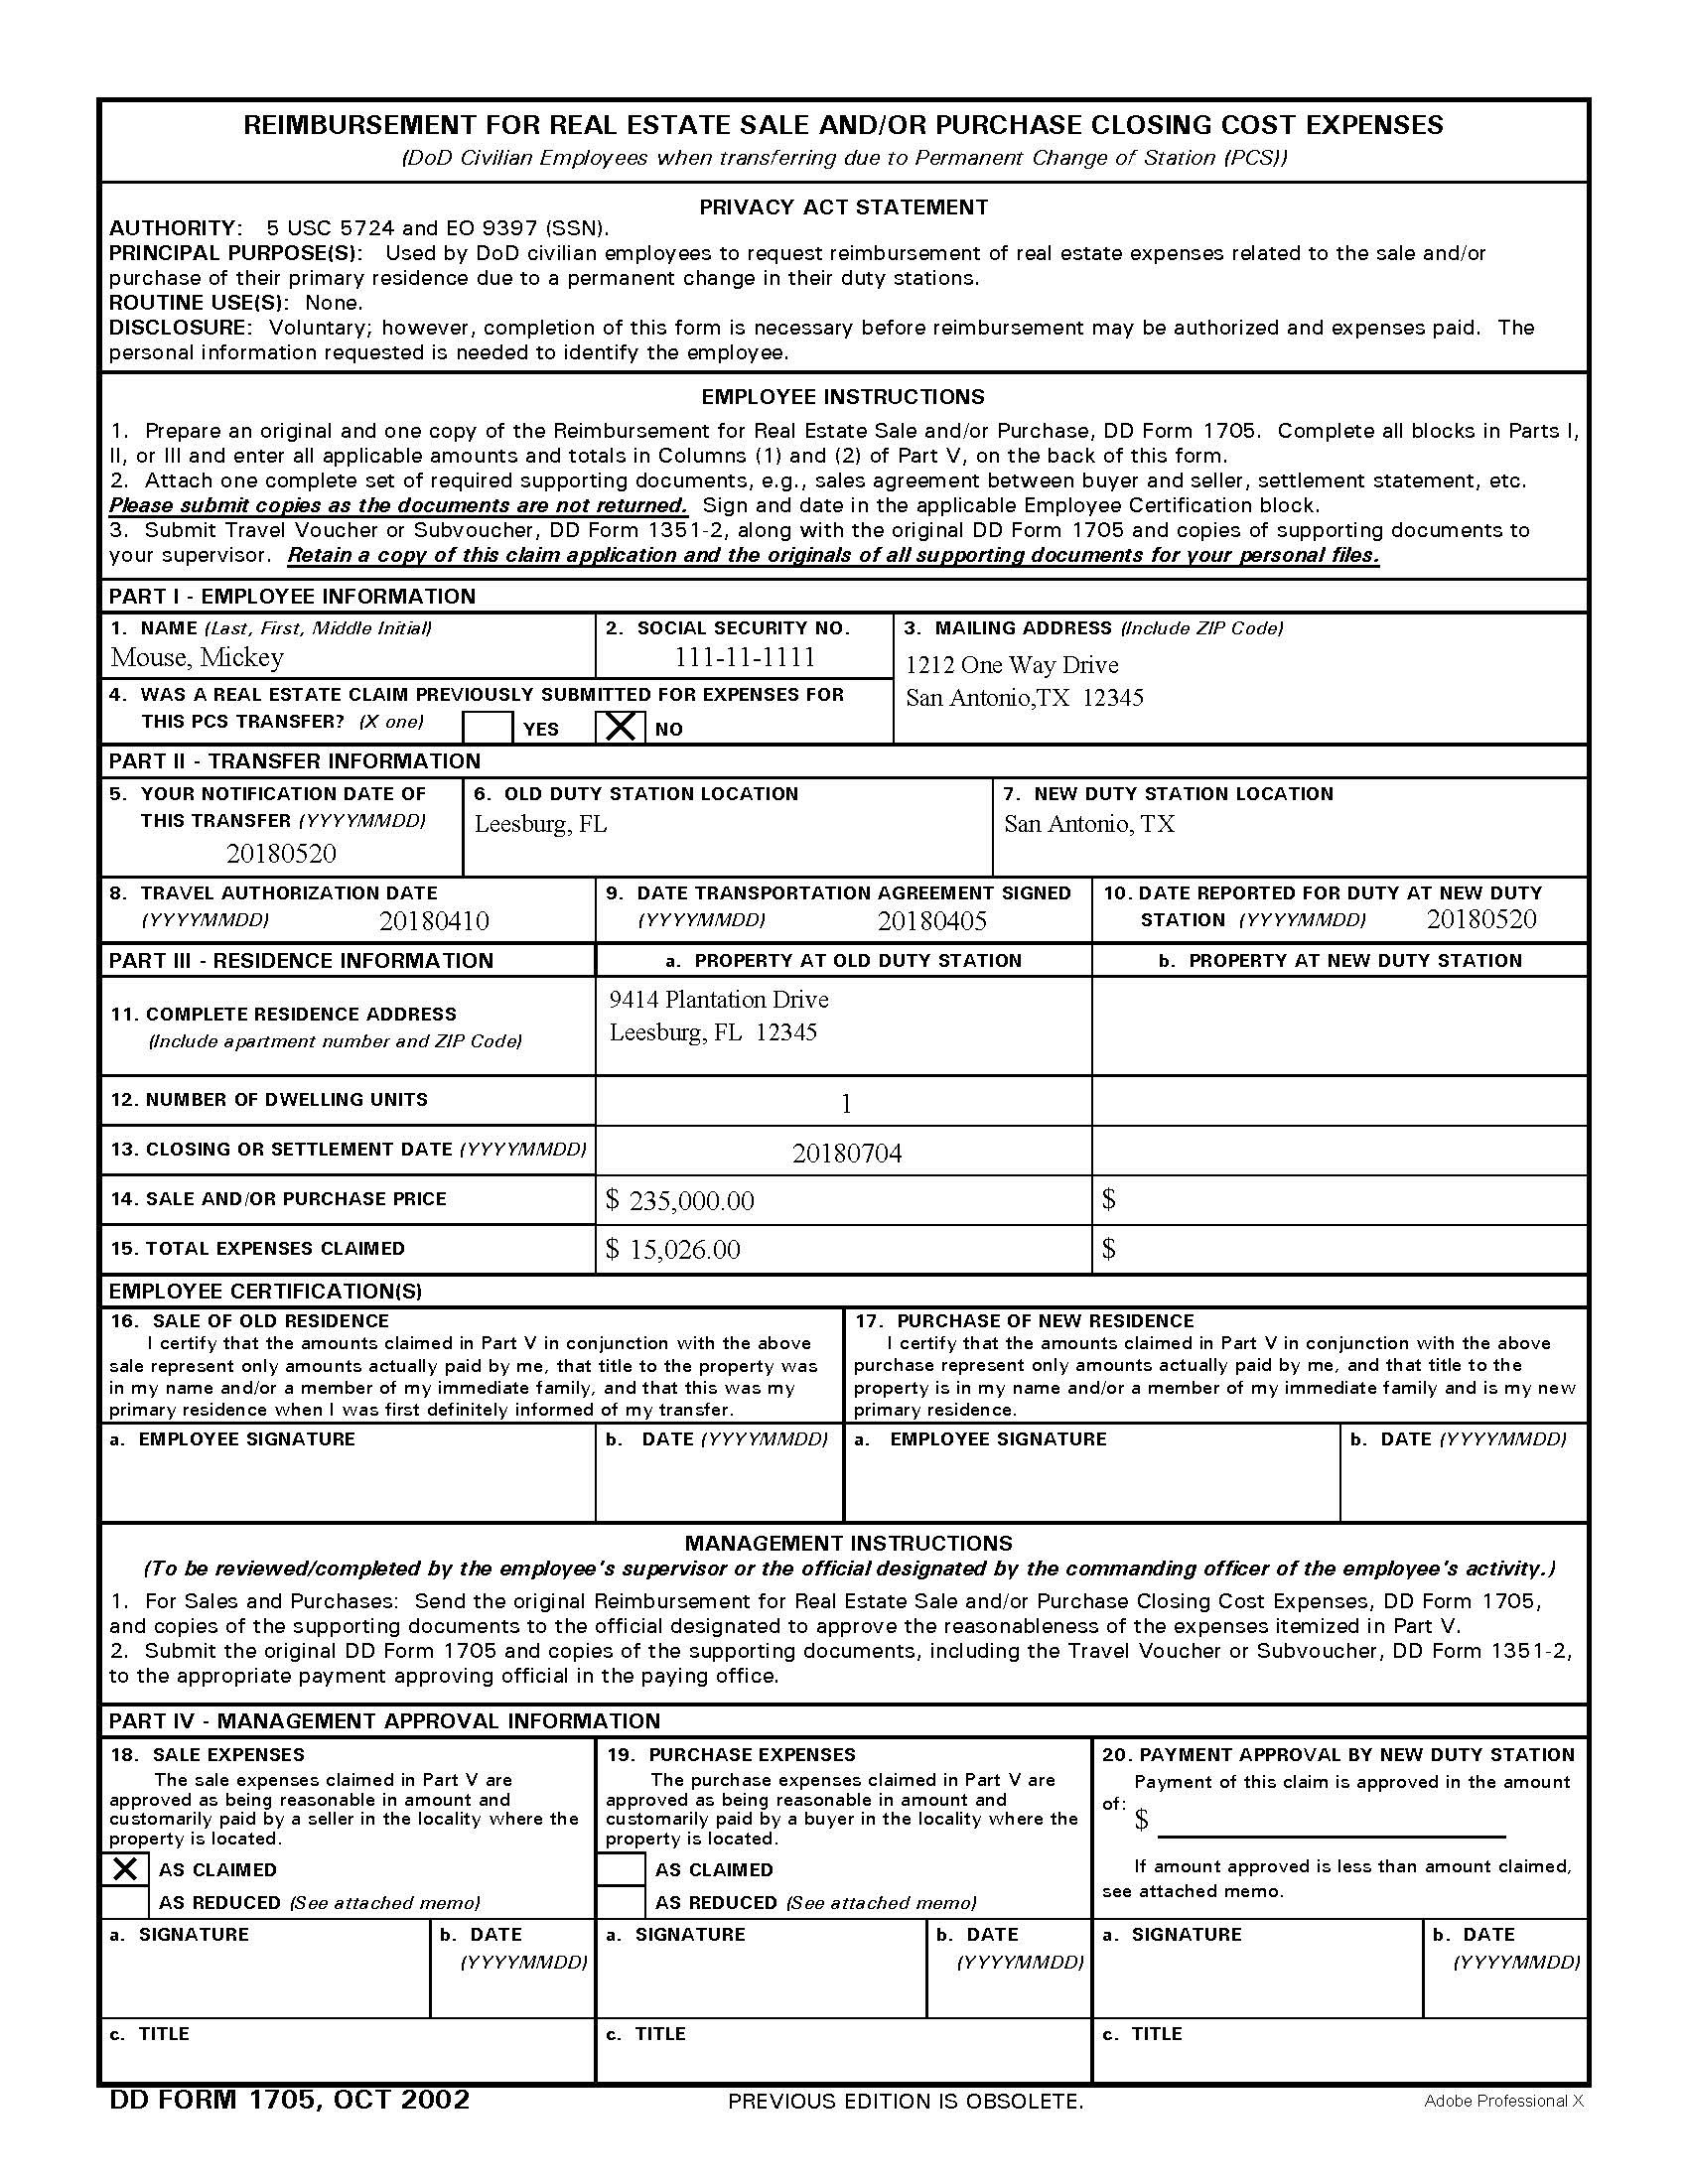 Real Estate Sale/Purchase Form 1705 filled out